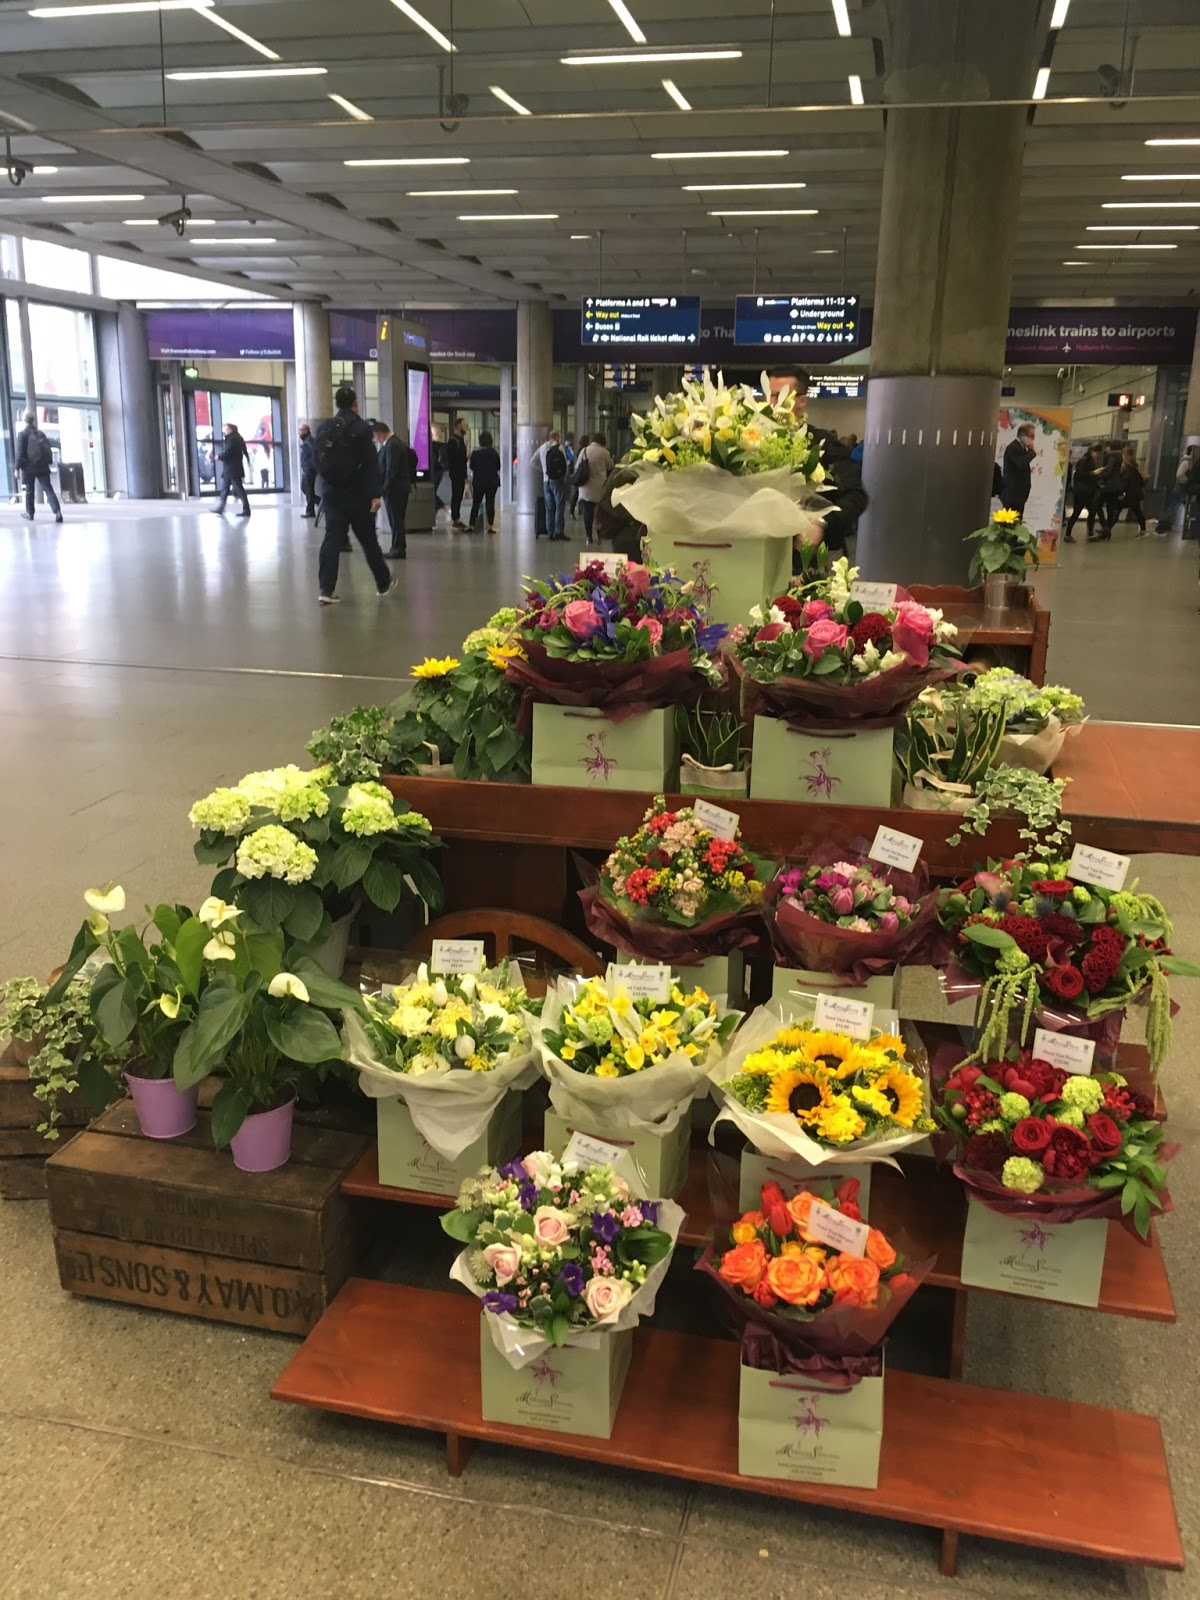 Flowers at Kings Cross